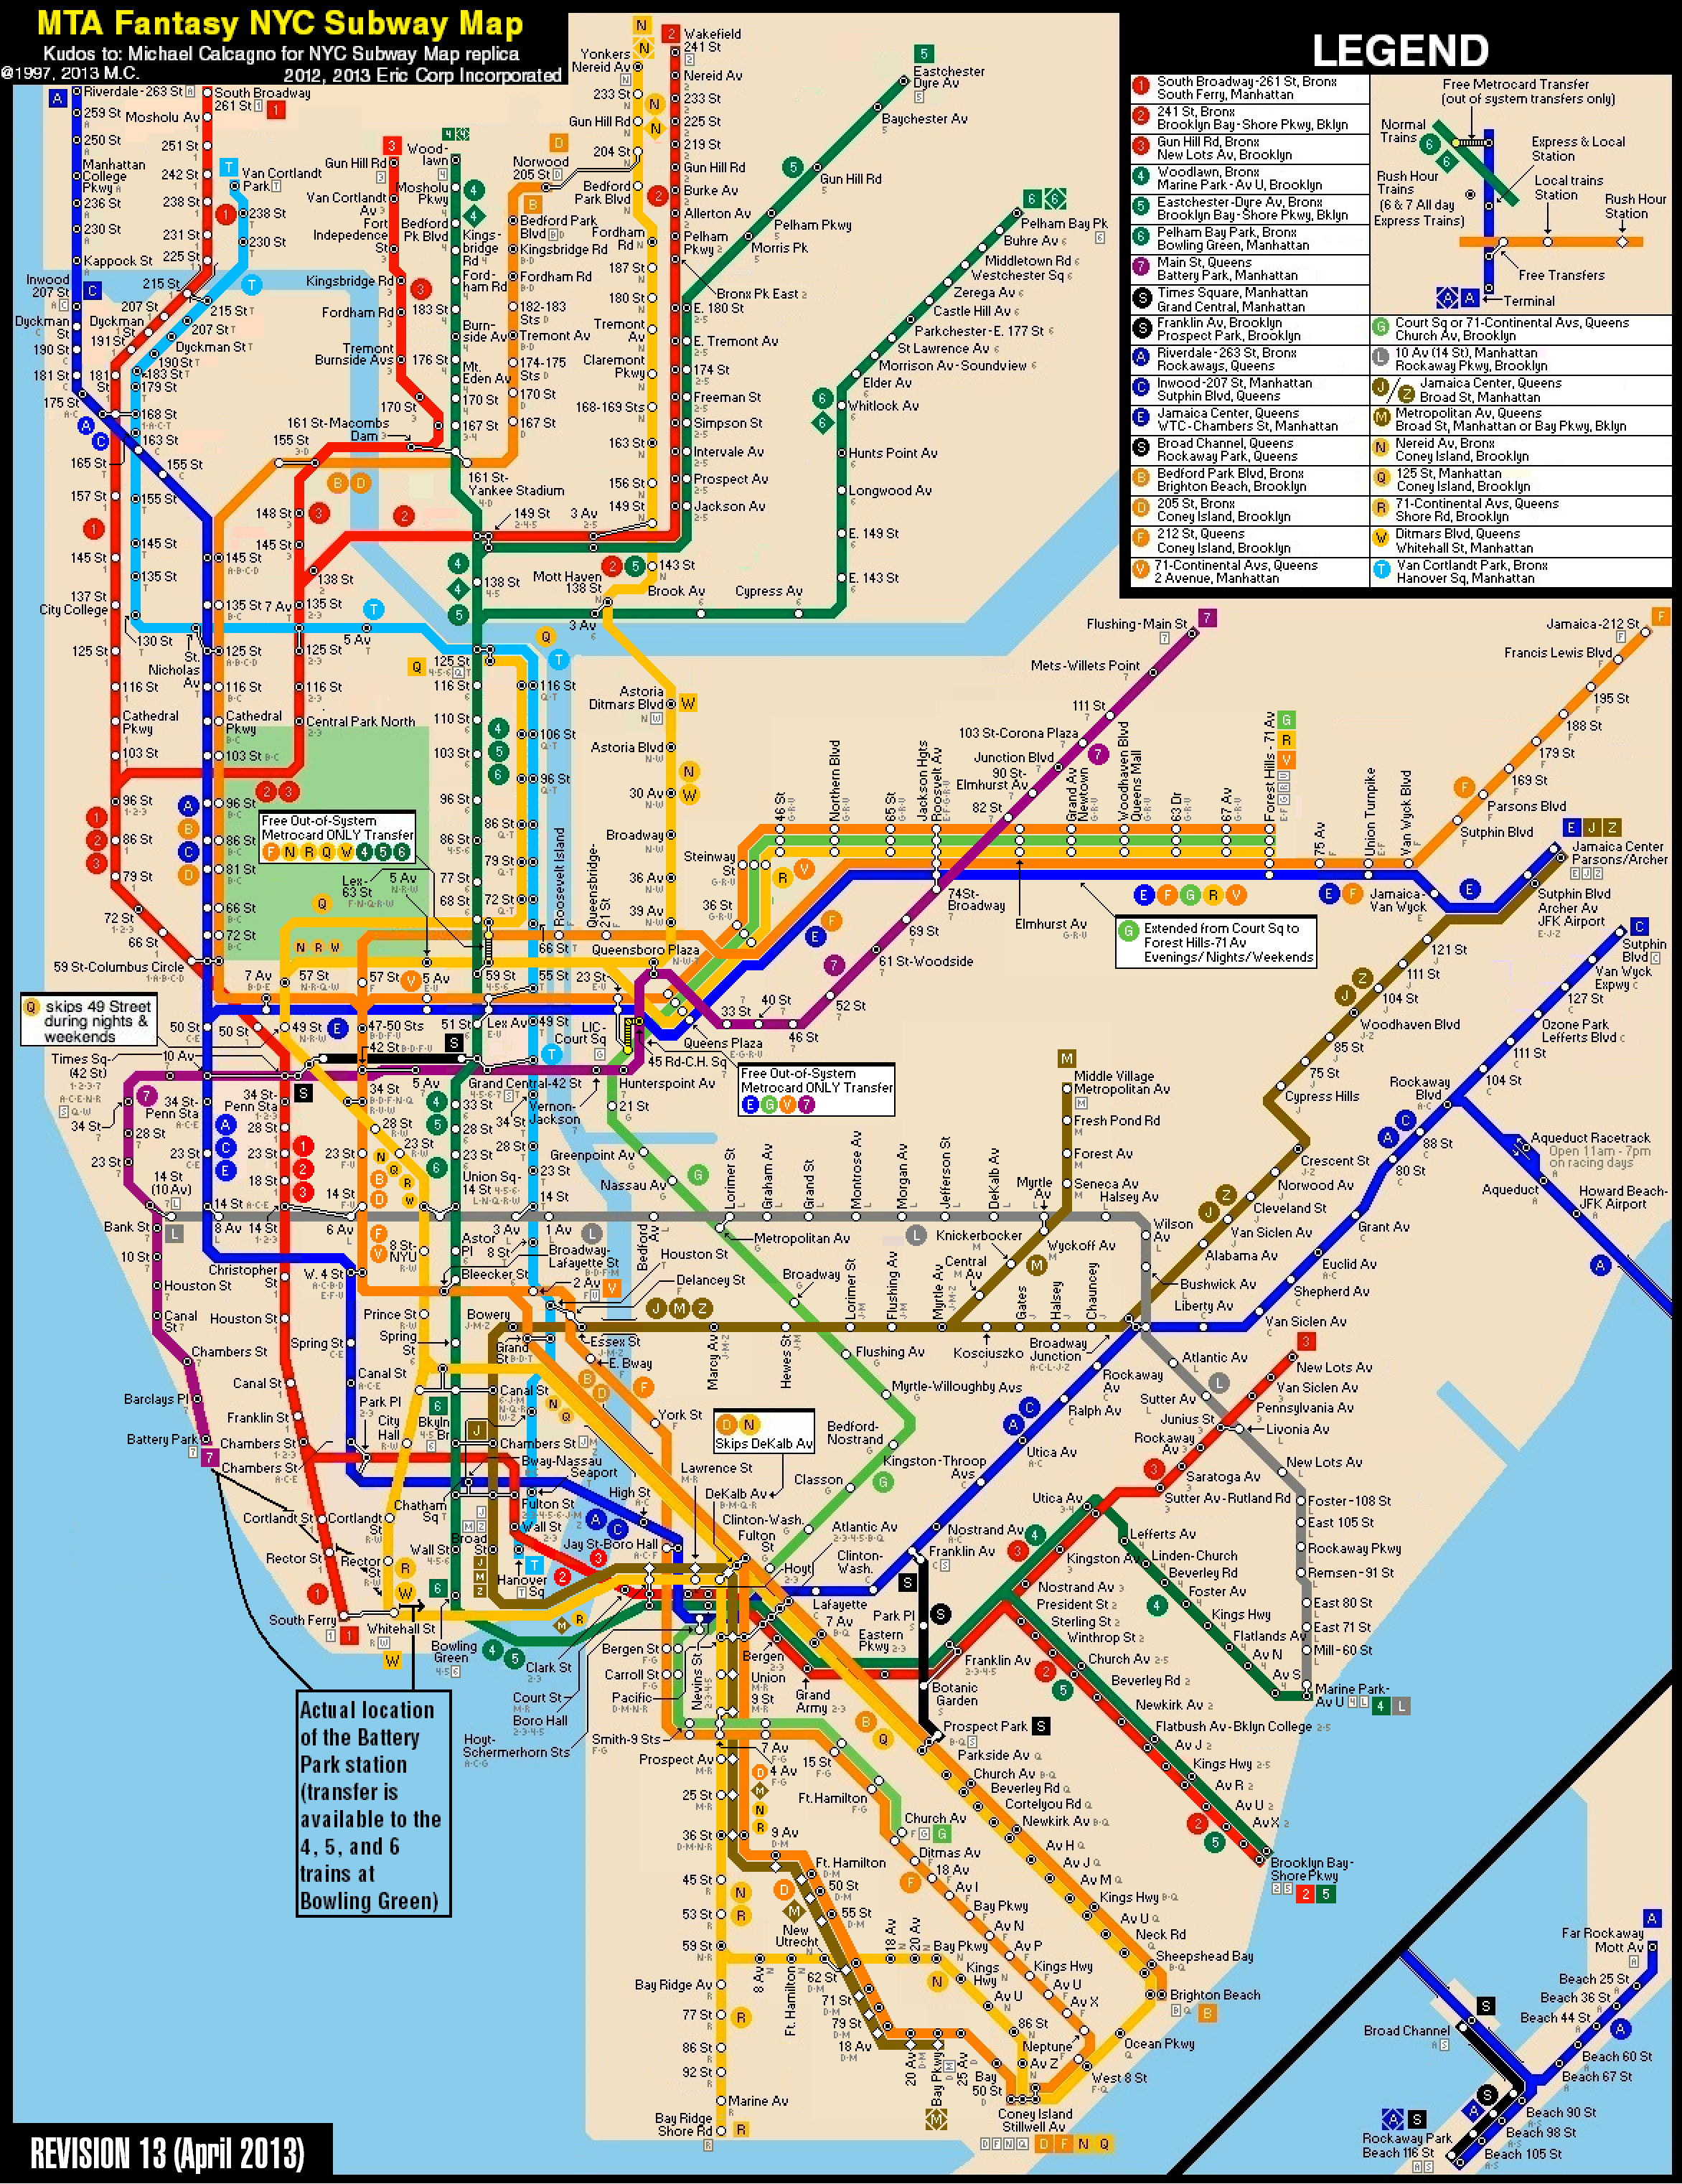 New York Subway Map | New York City Subway Fantasy Map (Revision